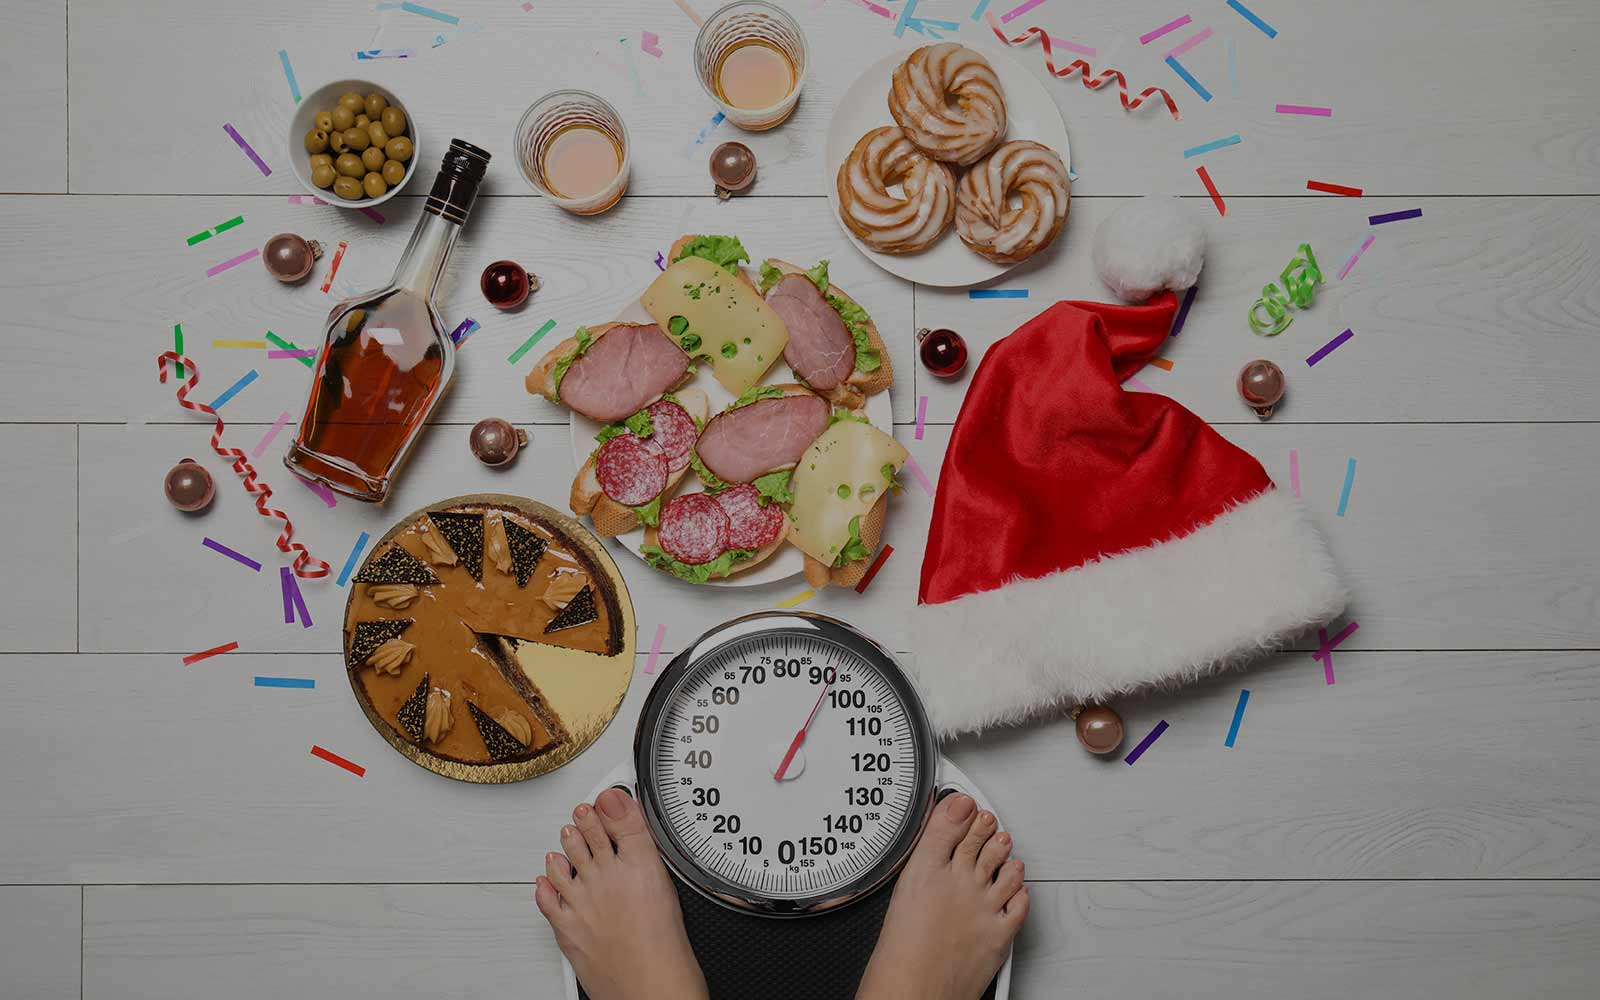 WEBINAR: How to NOT Gain Weight During the Holidays